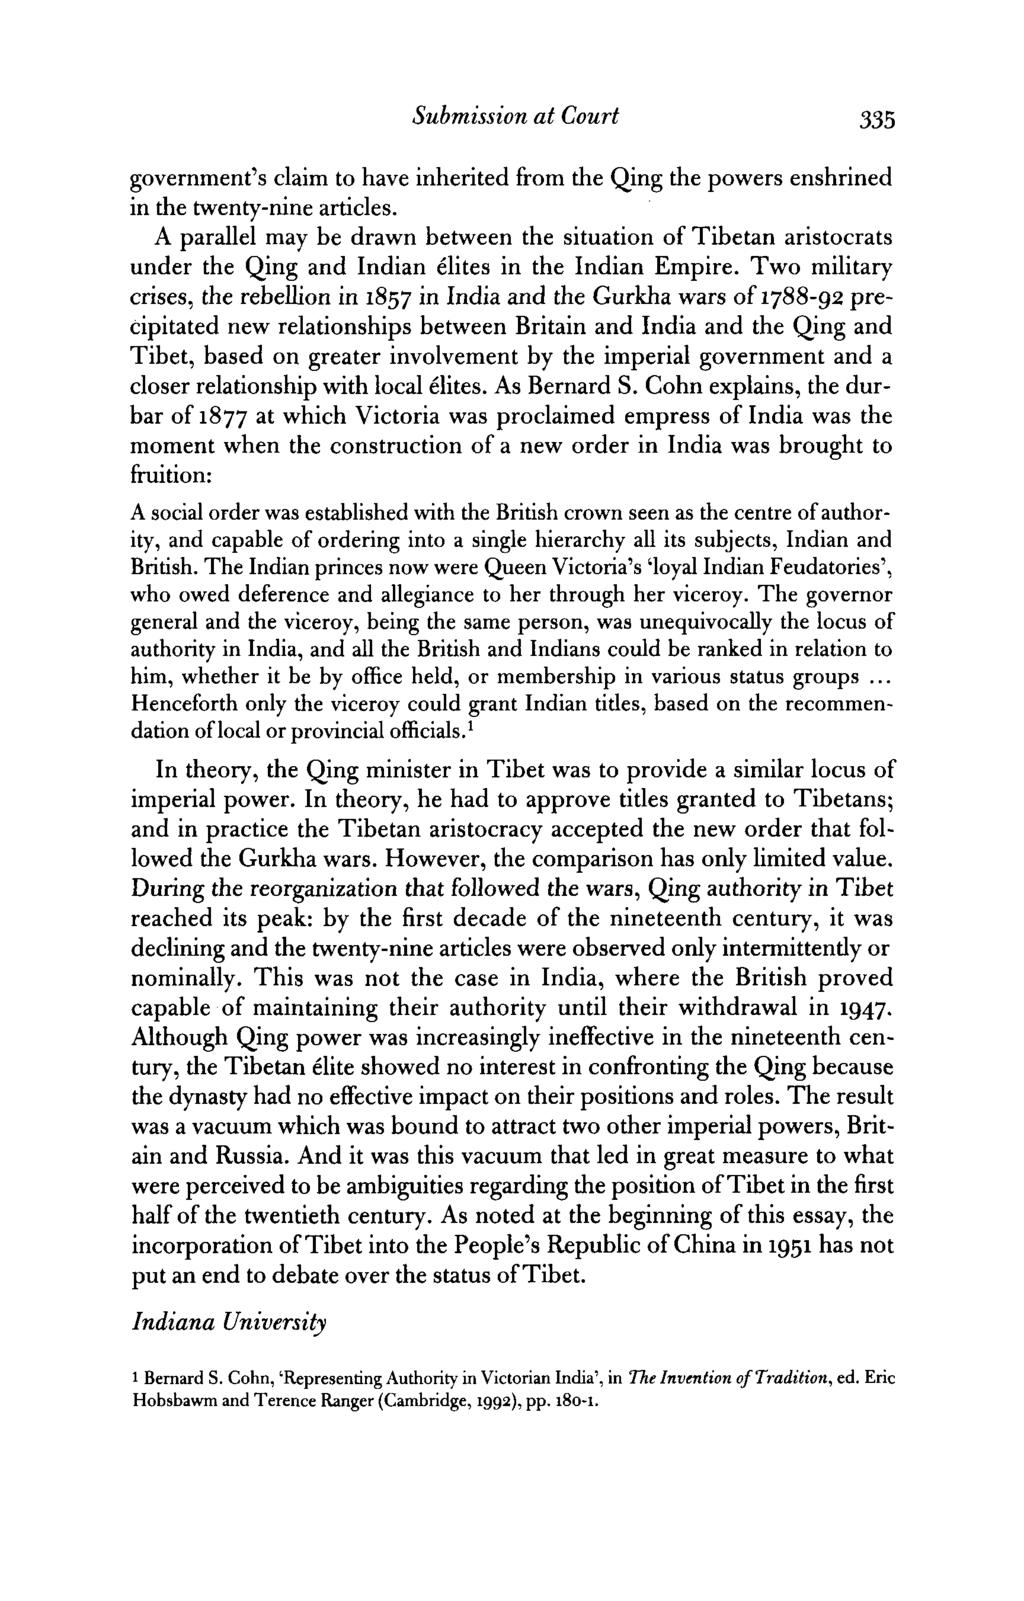 Submission at Court 335 government's claim to have inherited from die Qing die powers enshrined in die twenty-nine articles.